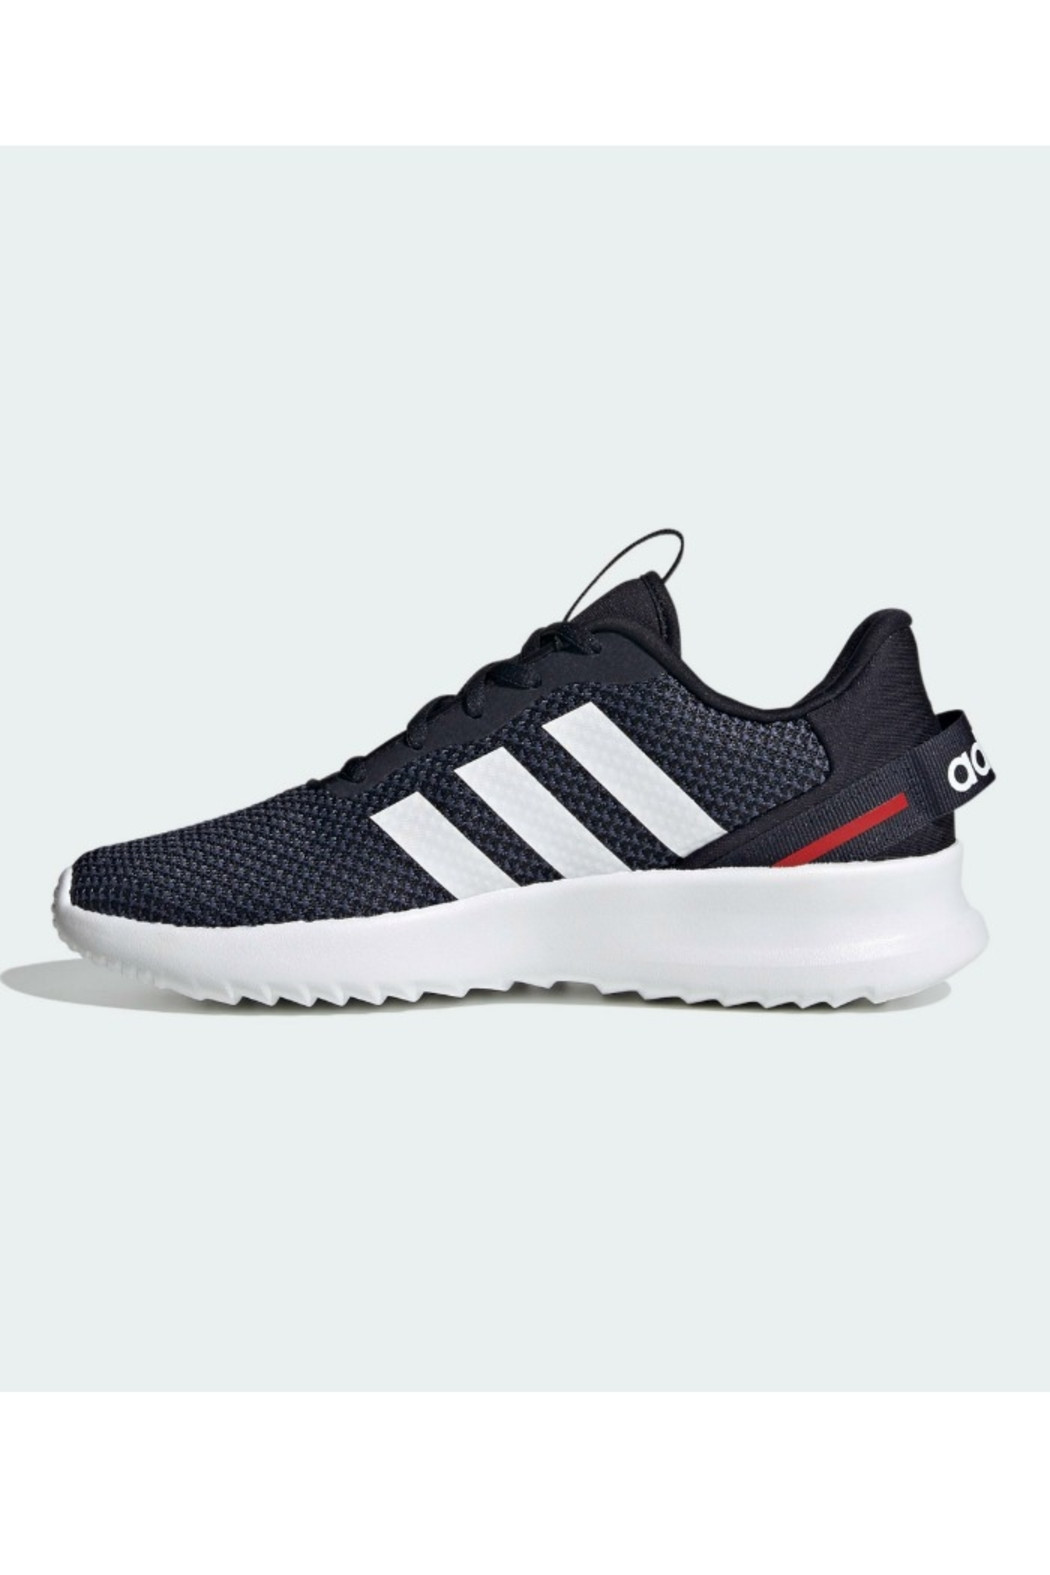 adidas Adidas Racer TR 2.0 Kids - Back Cropped Image